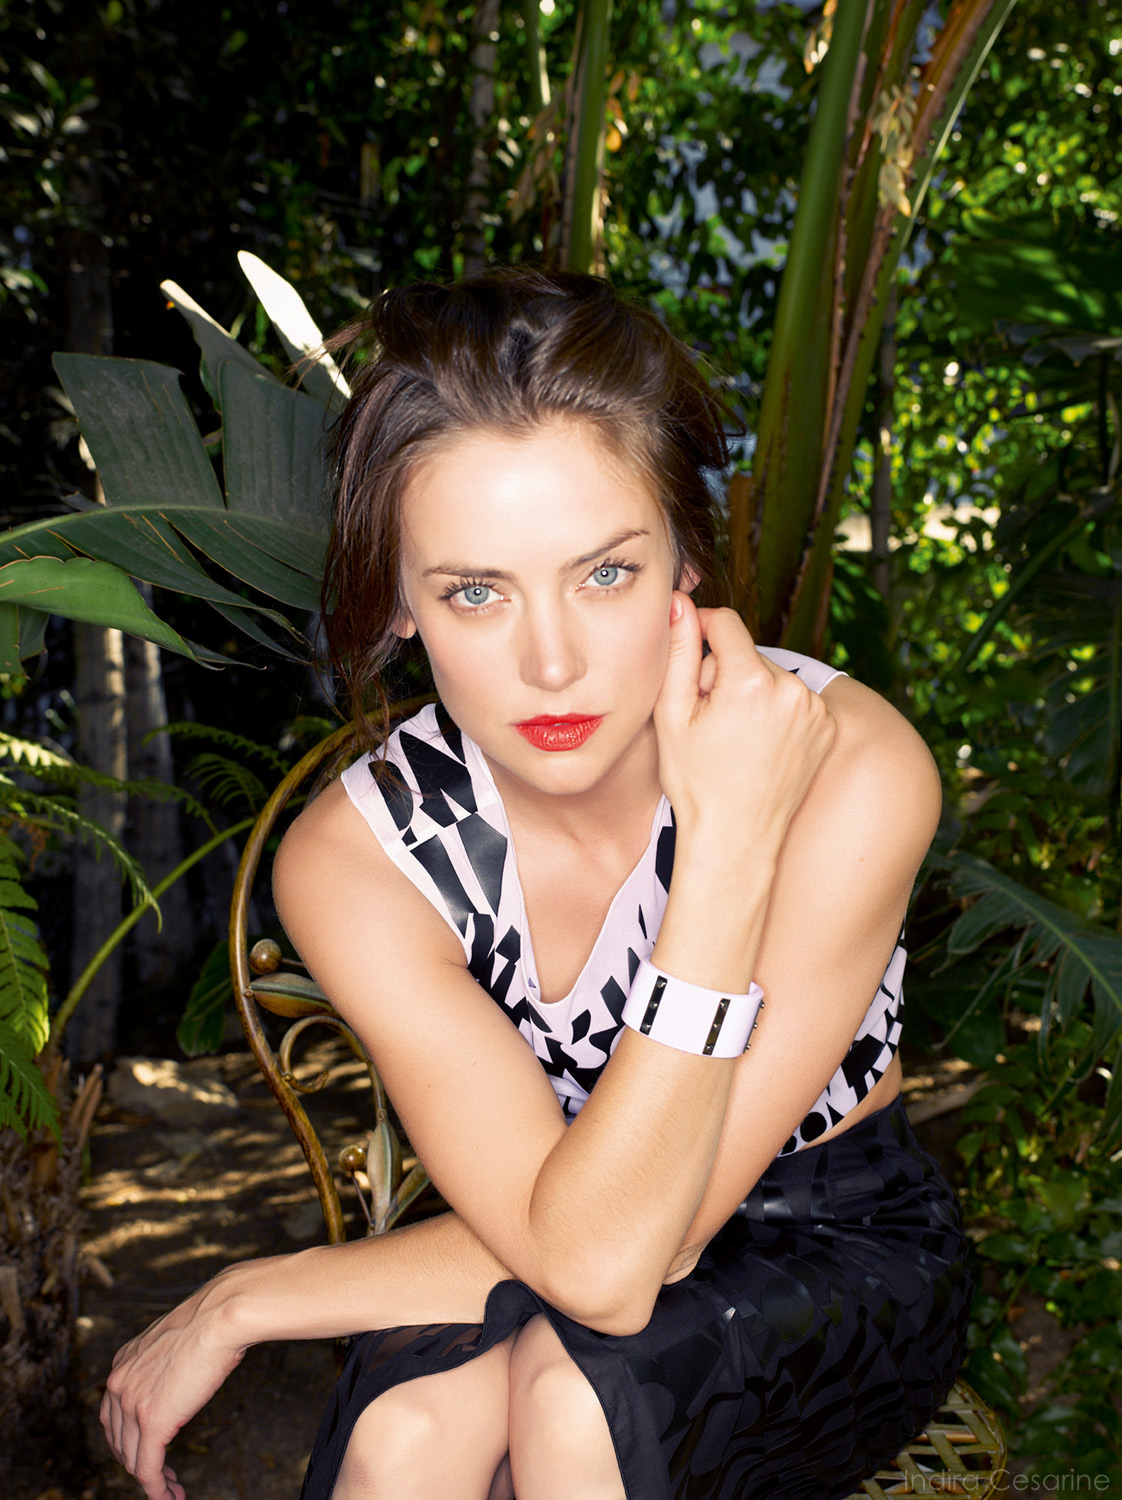 Jessica-Stroup-Photography-by-Indira-Cesarine-008.jpg